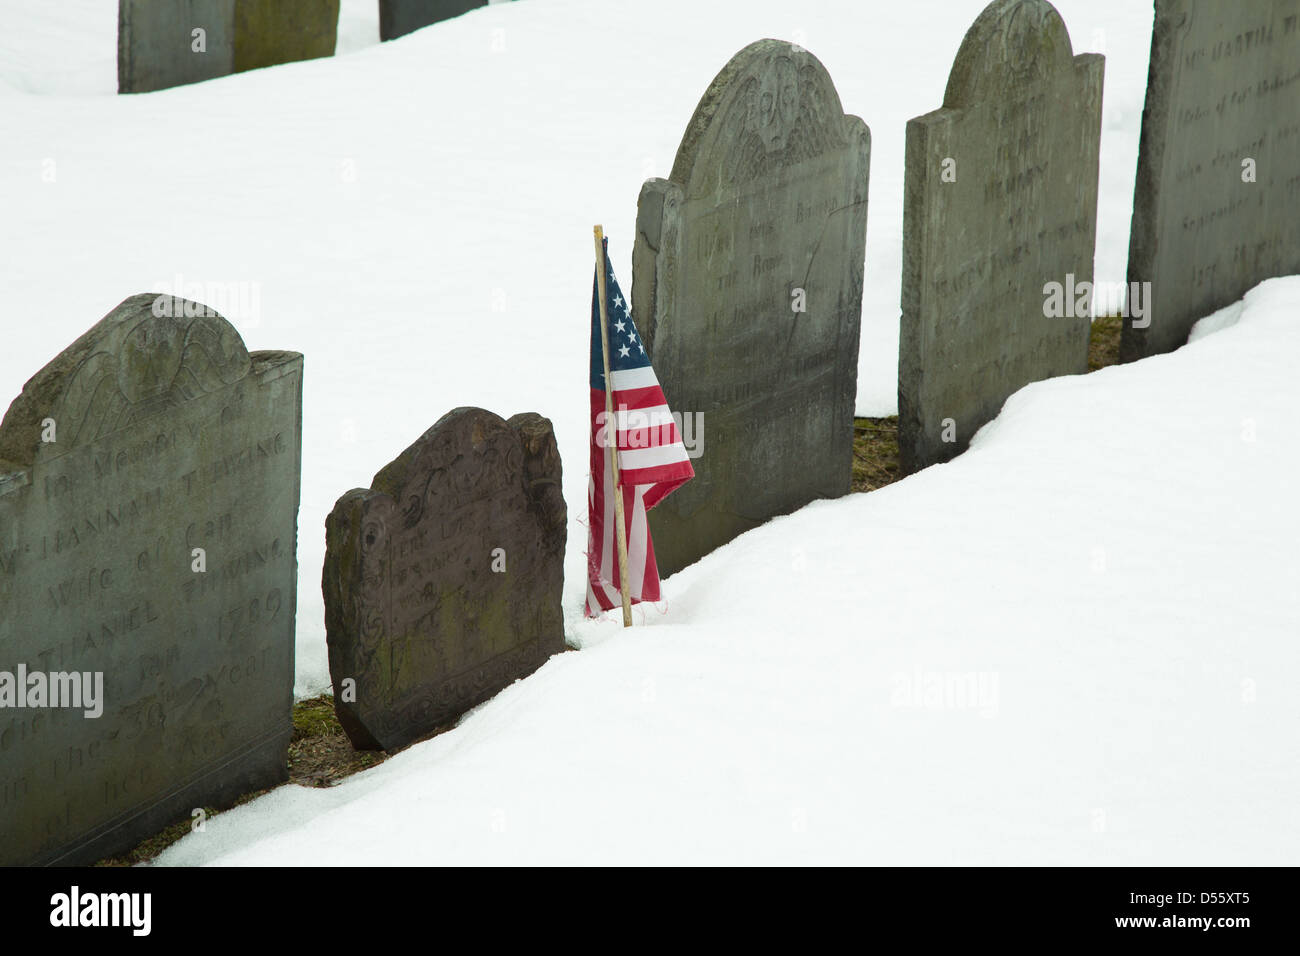 The headstones Granary Burying Ground in Boston mark the final resting place of many of America's founding fathers. - Stock Image